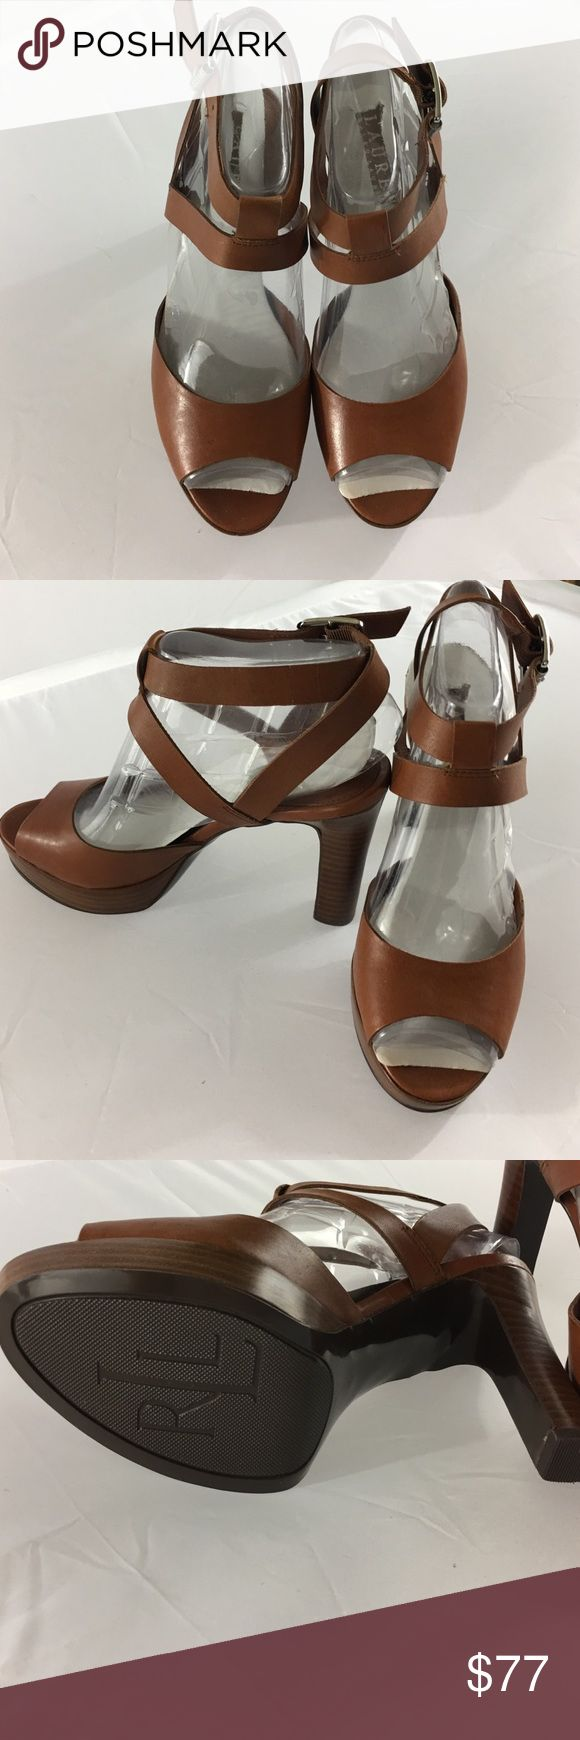 "NEW LAUREN Ralph Lauren Brown Strappy High Heels Brand NEW LAUREN Ralph Lauren Brown Strappy High Heel Sandals with Silver Buckles and 4"" Heel Size 7B Never Worn Purchased at Macy's for $169 Get them here for less than half price! Lauren Ralph Lauren Shoes Heels"